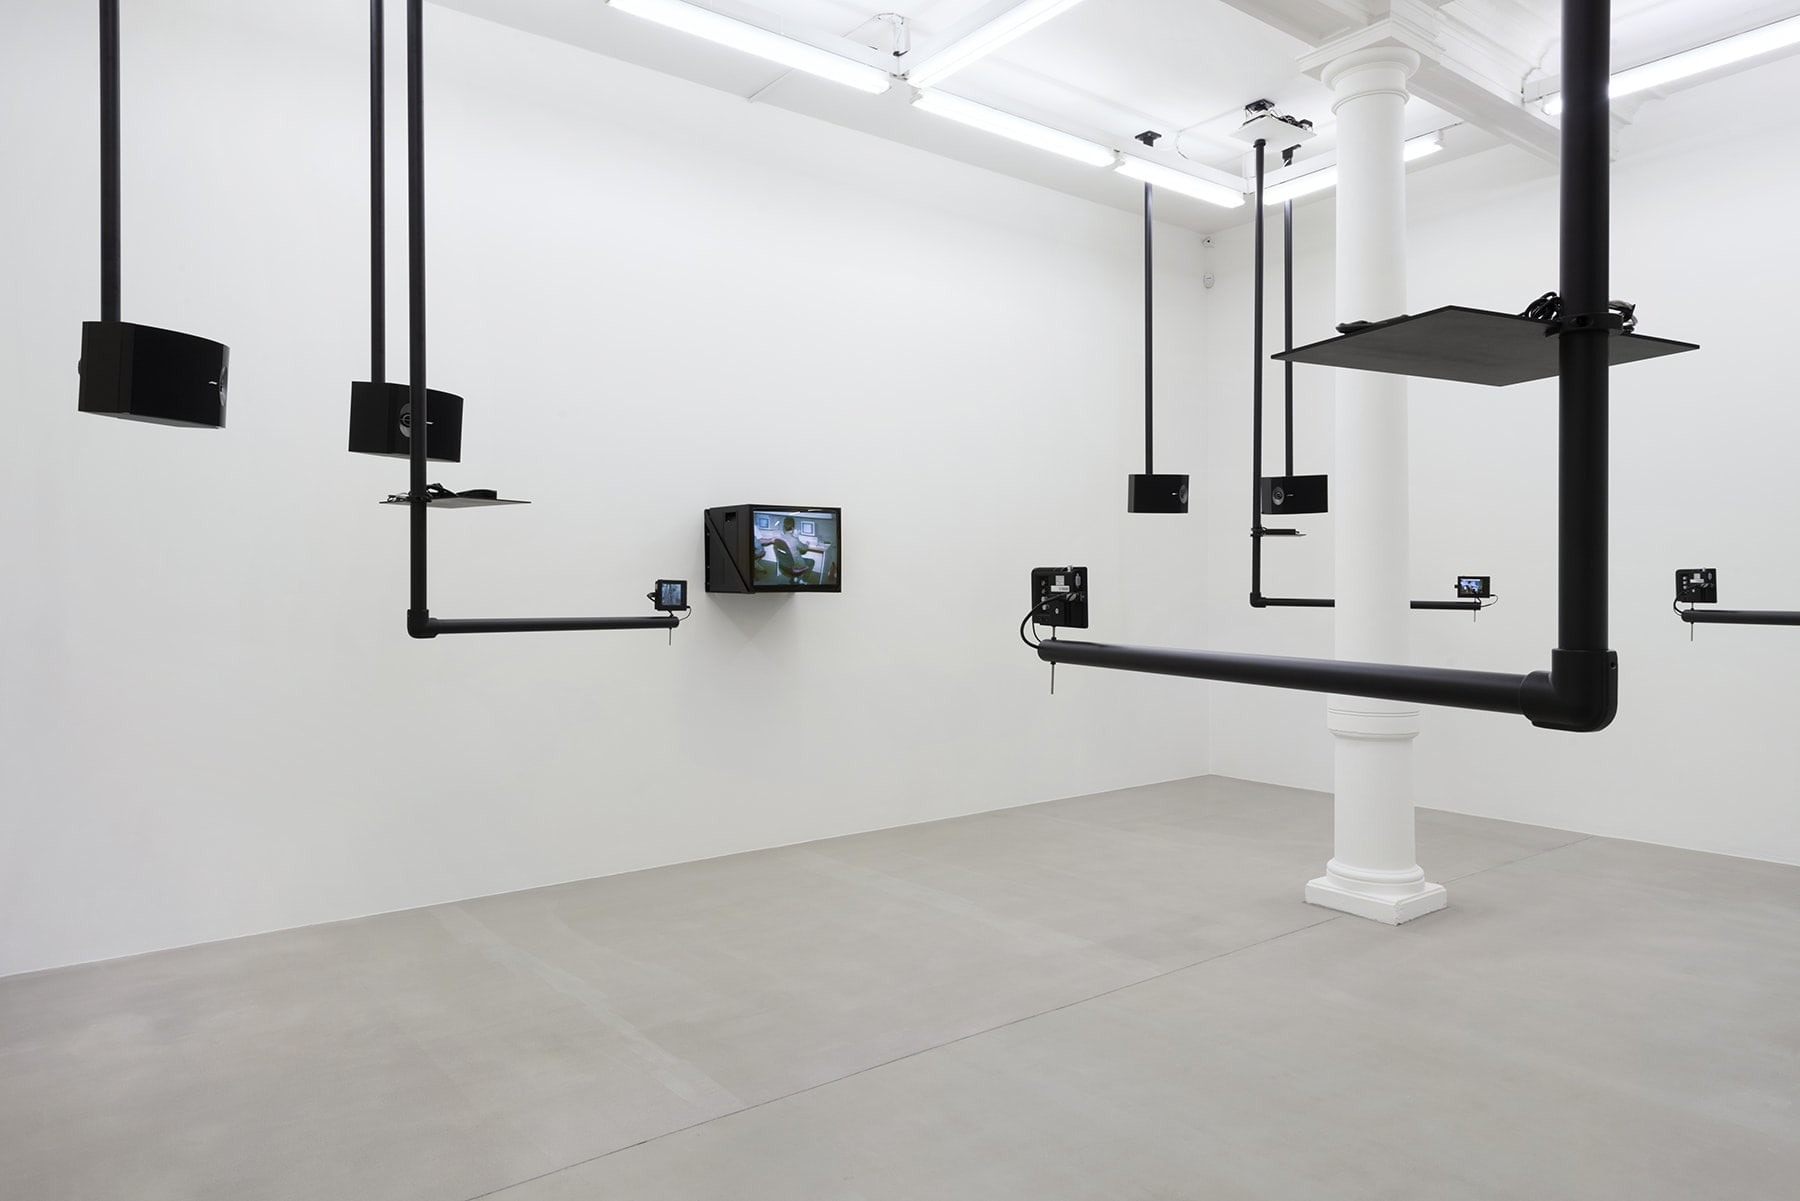 Installation: screens and speakers rest on suspended black platforms.